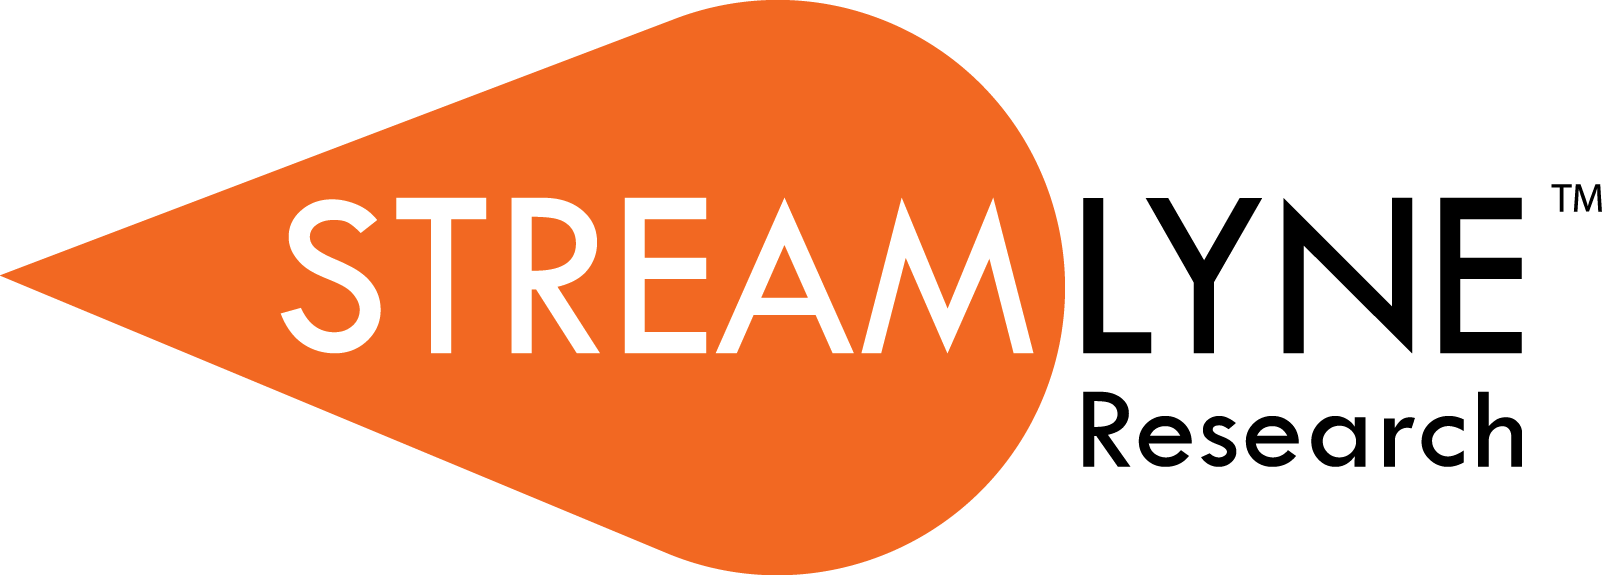 Streamlyne logo